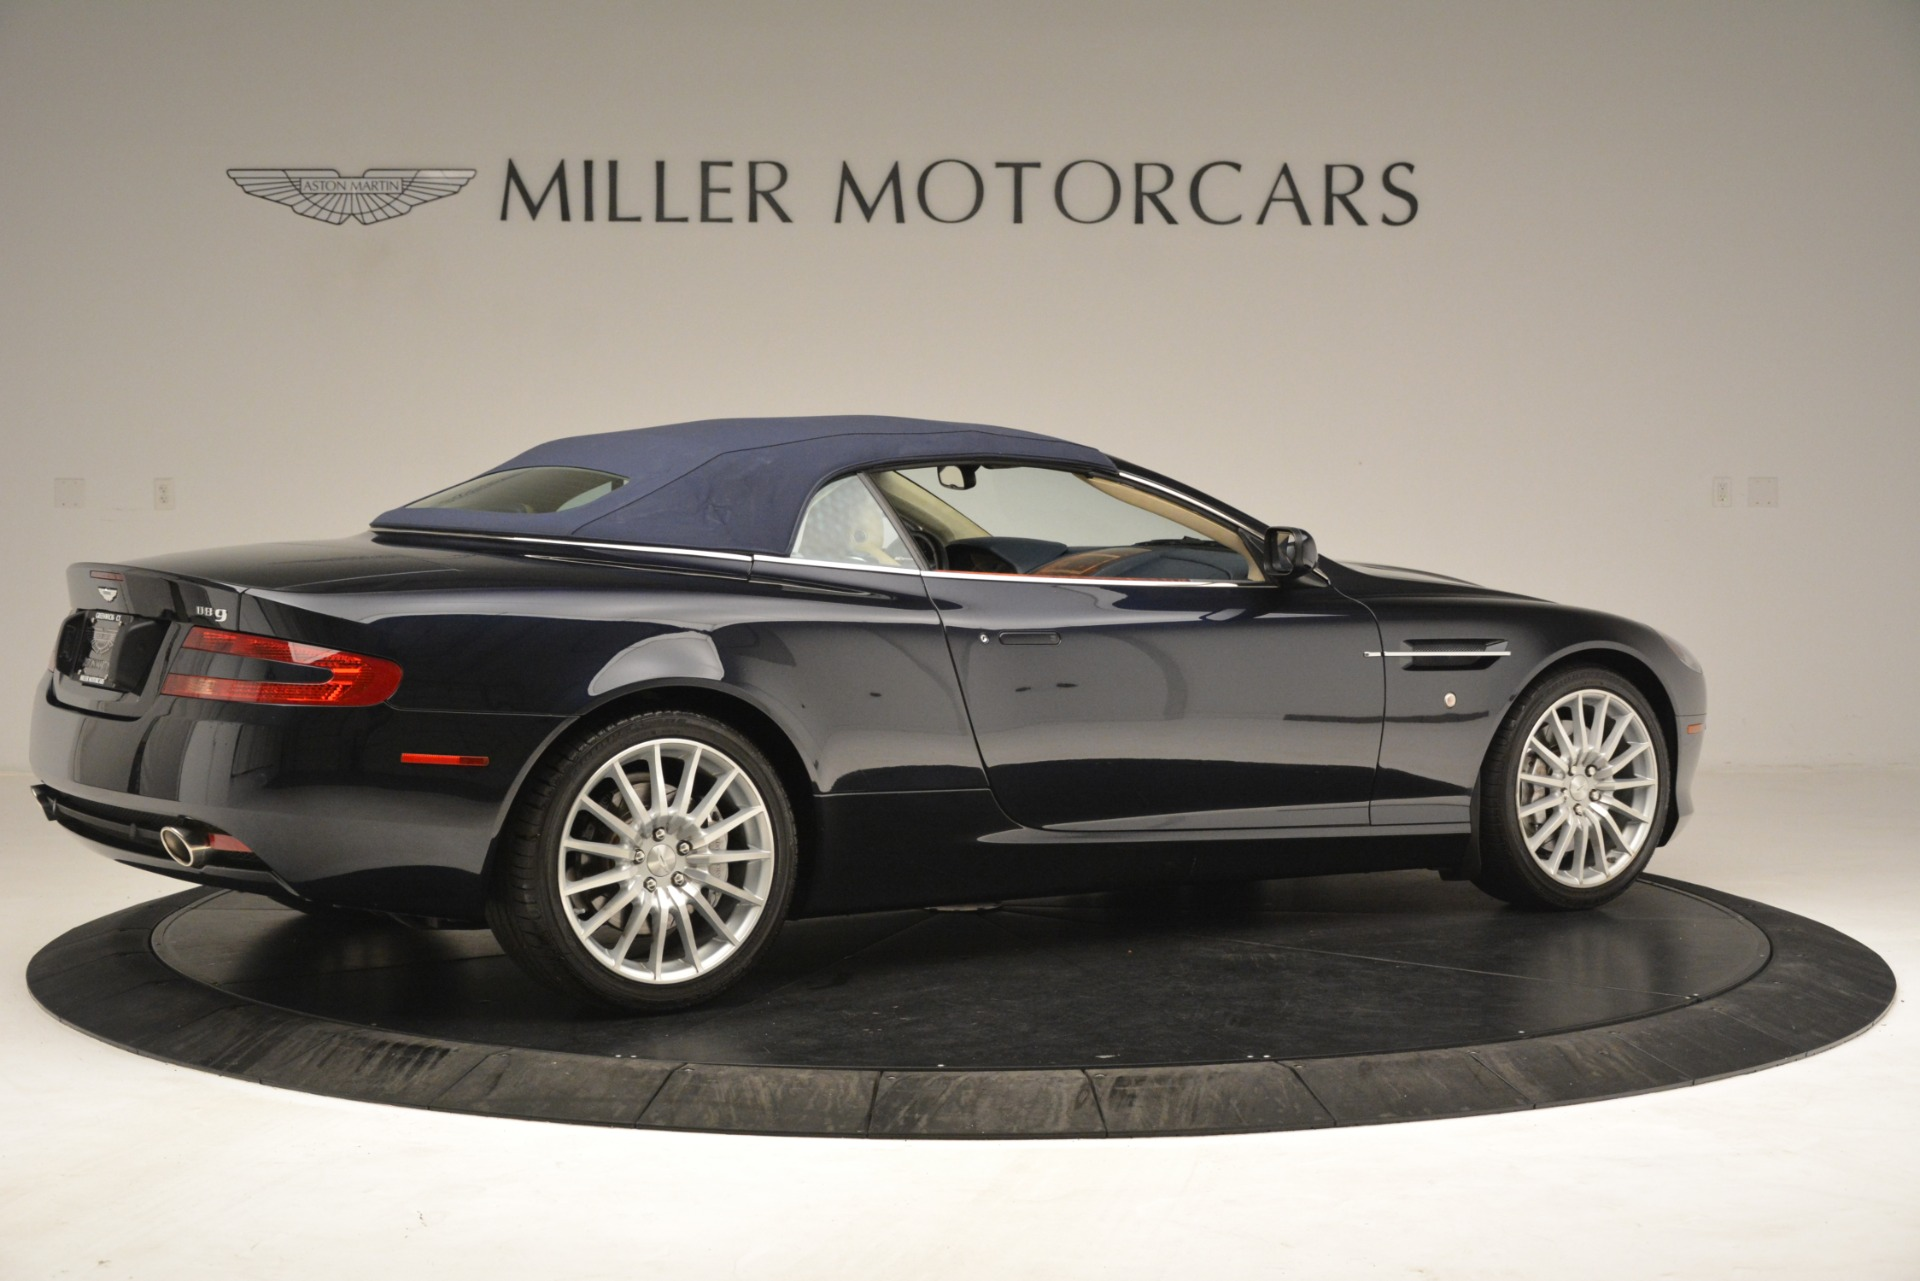 Used 2007 Aston Martin DB9 Convertible For Sale In Westport, CT 3291_p29